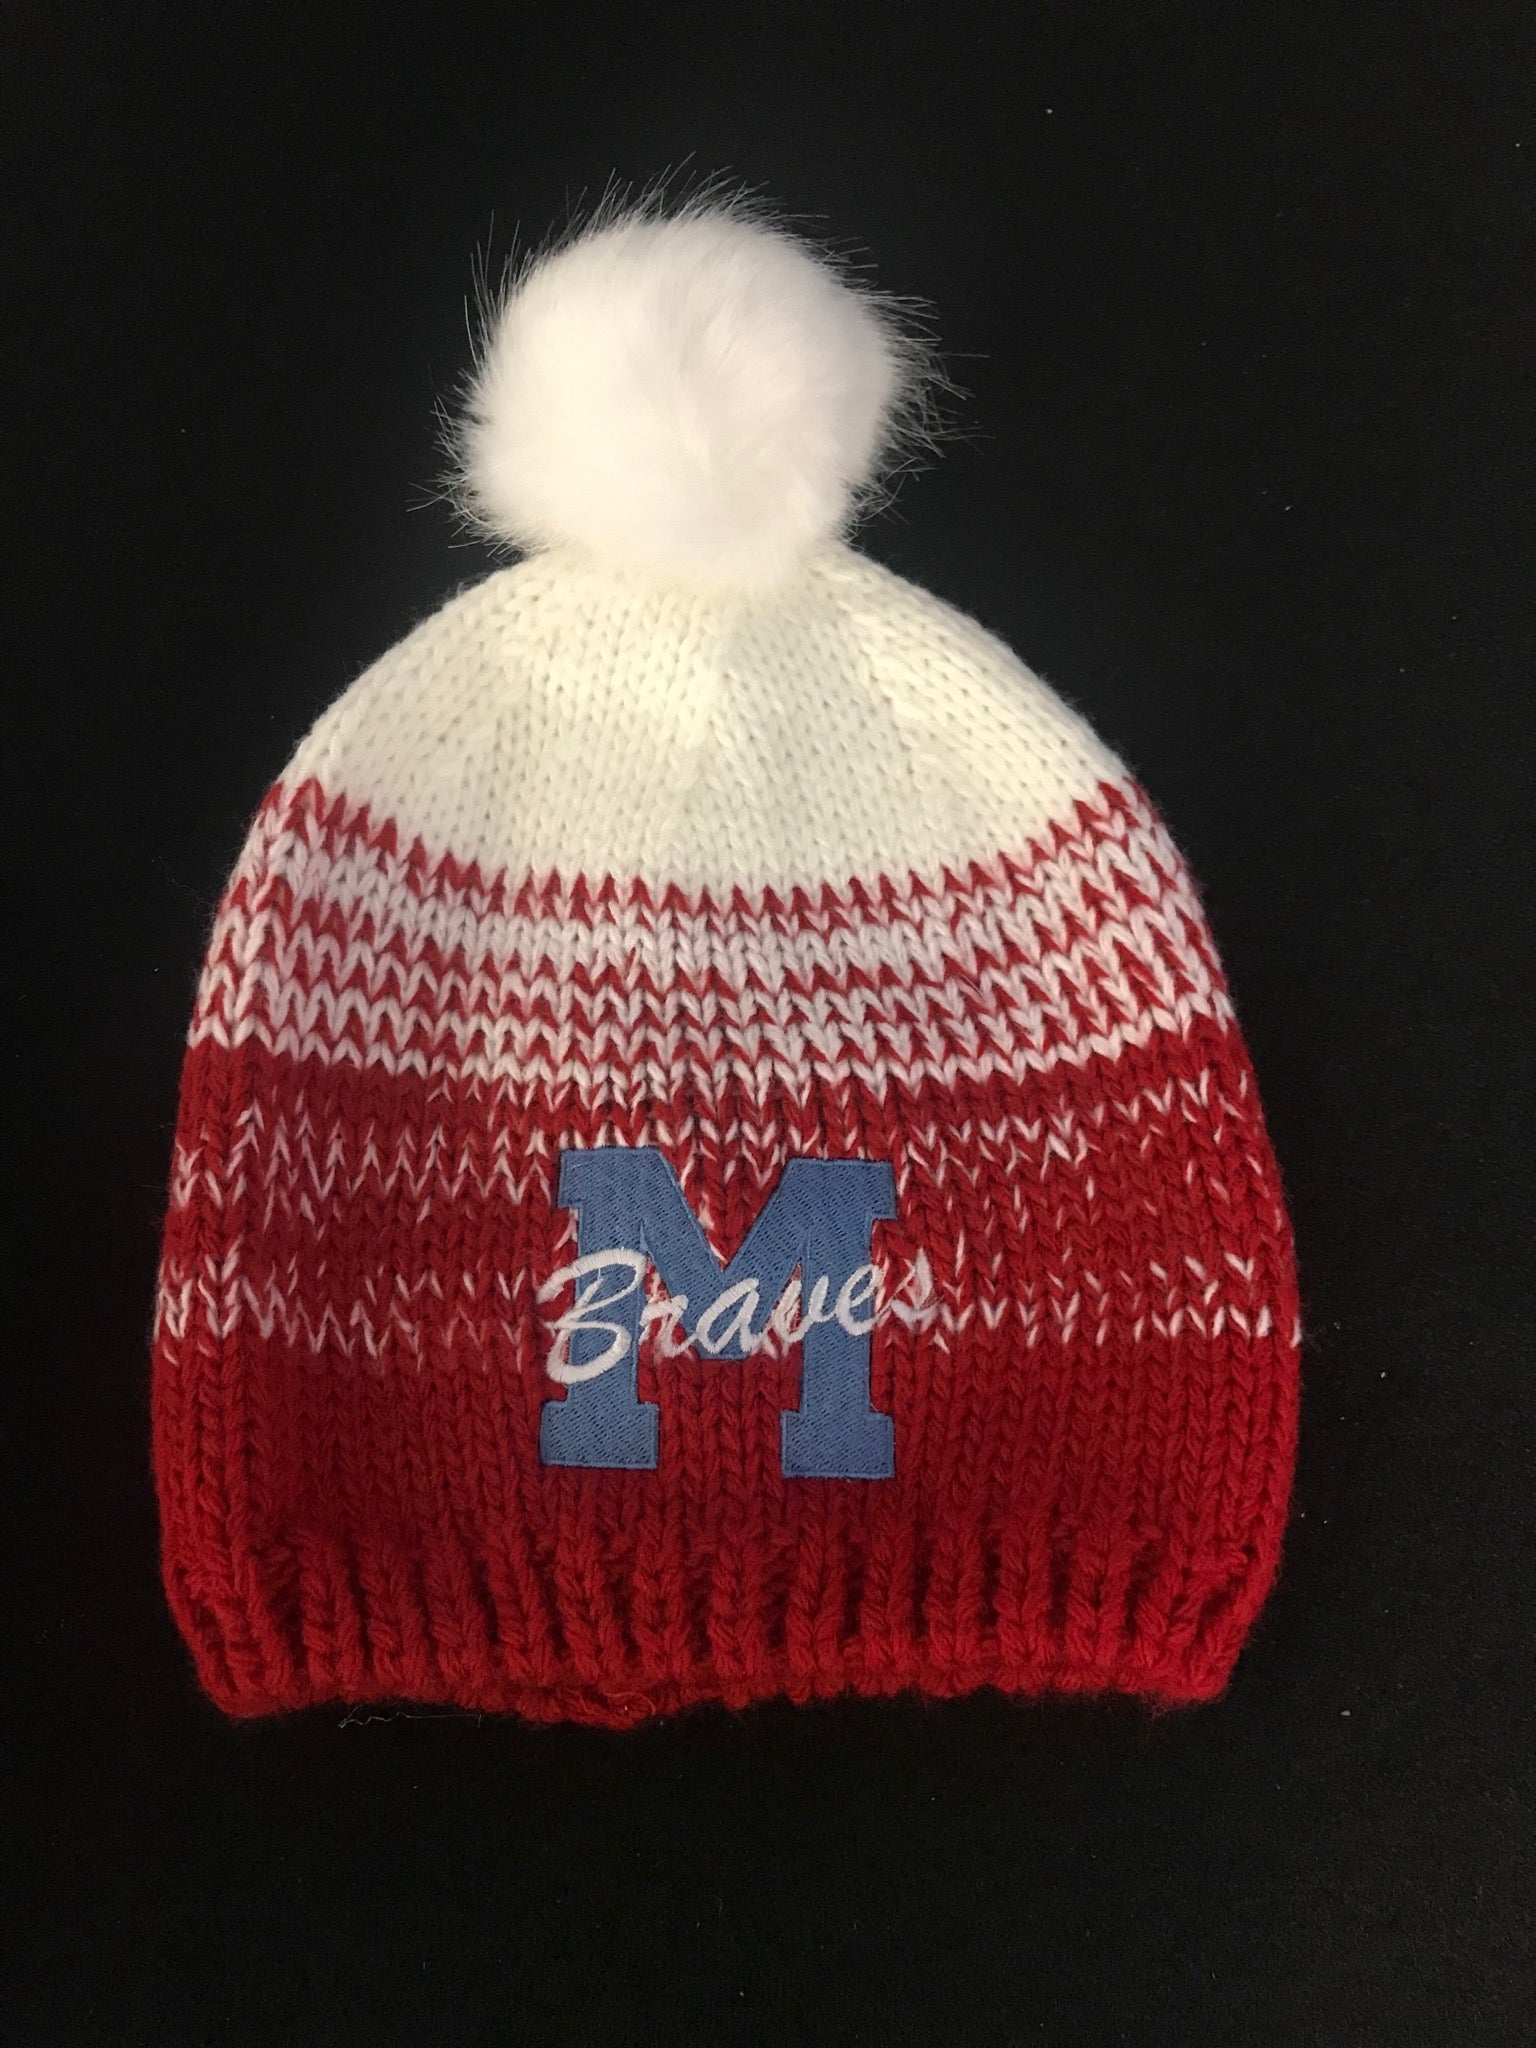 Braves Beanie and Sock Caps - Embroidered